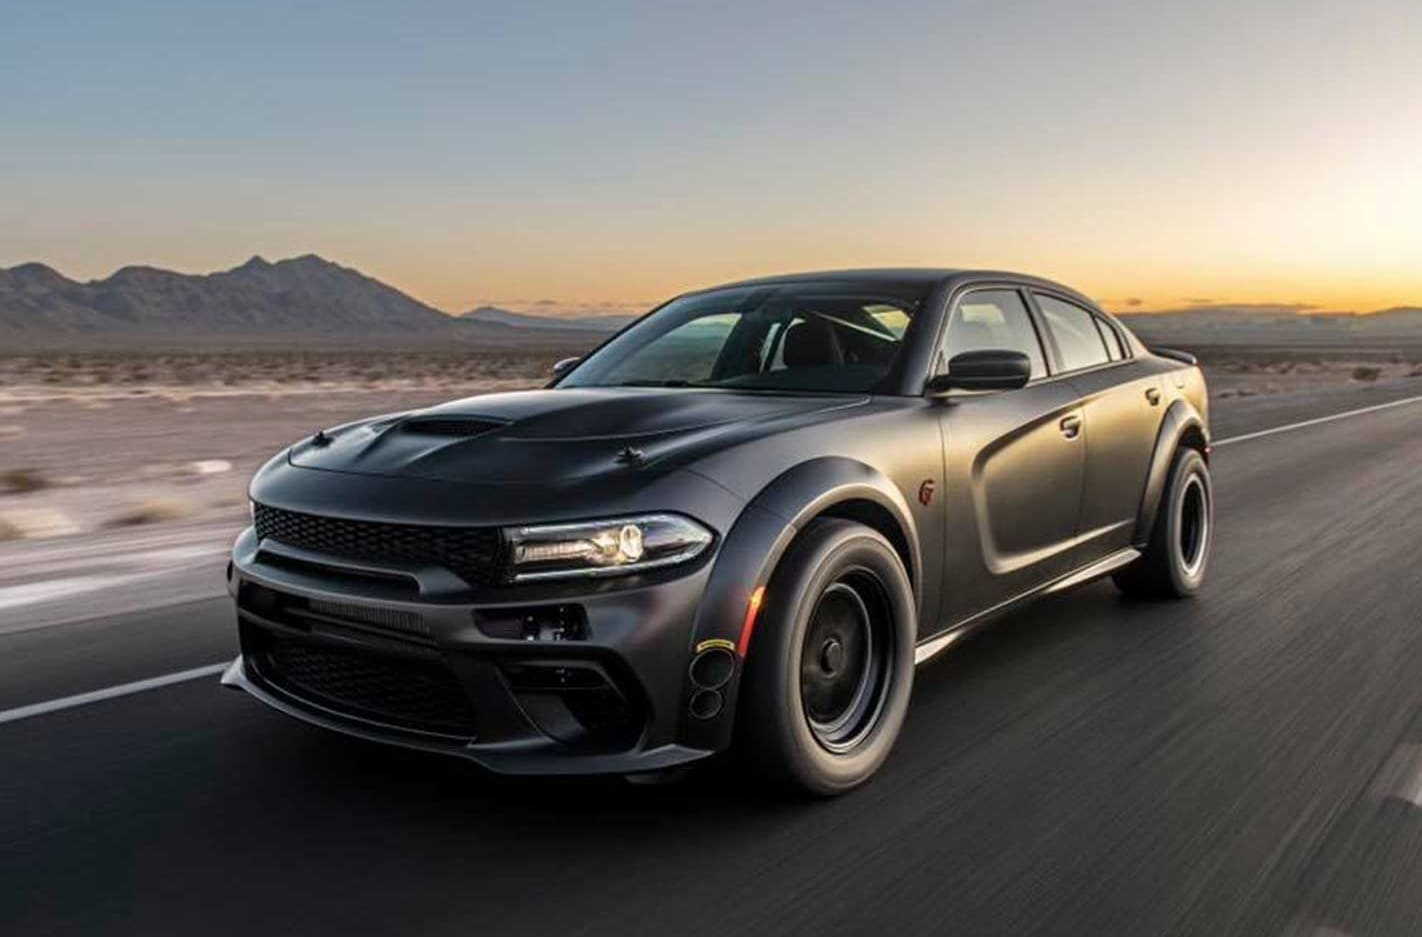 Speedkore twin-turbo AWD carbon-fibre Charger revealed